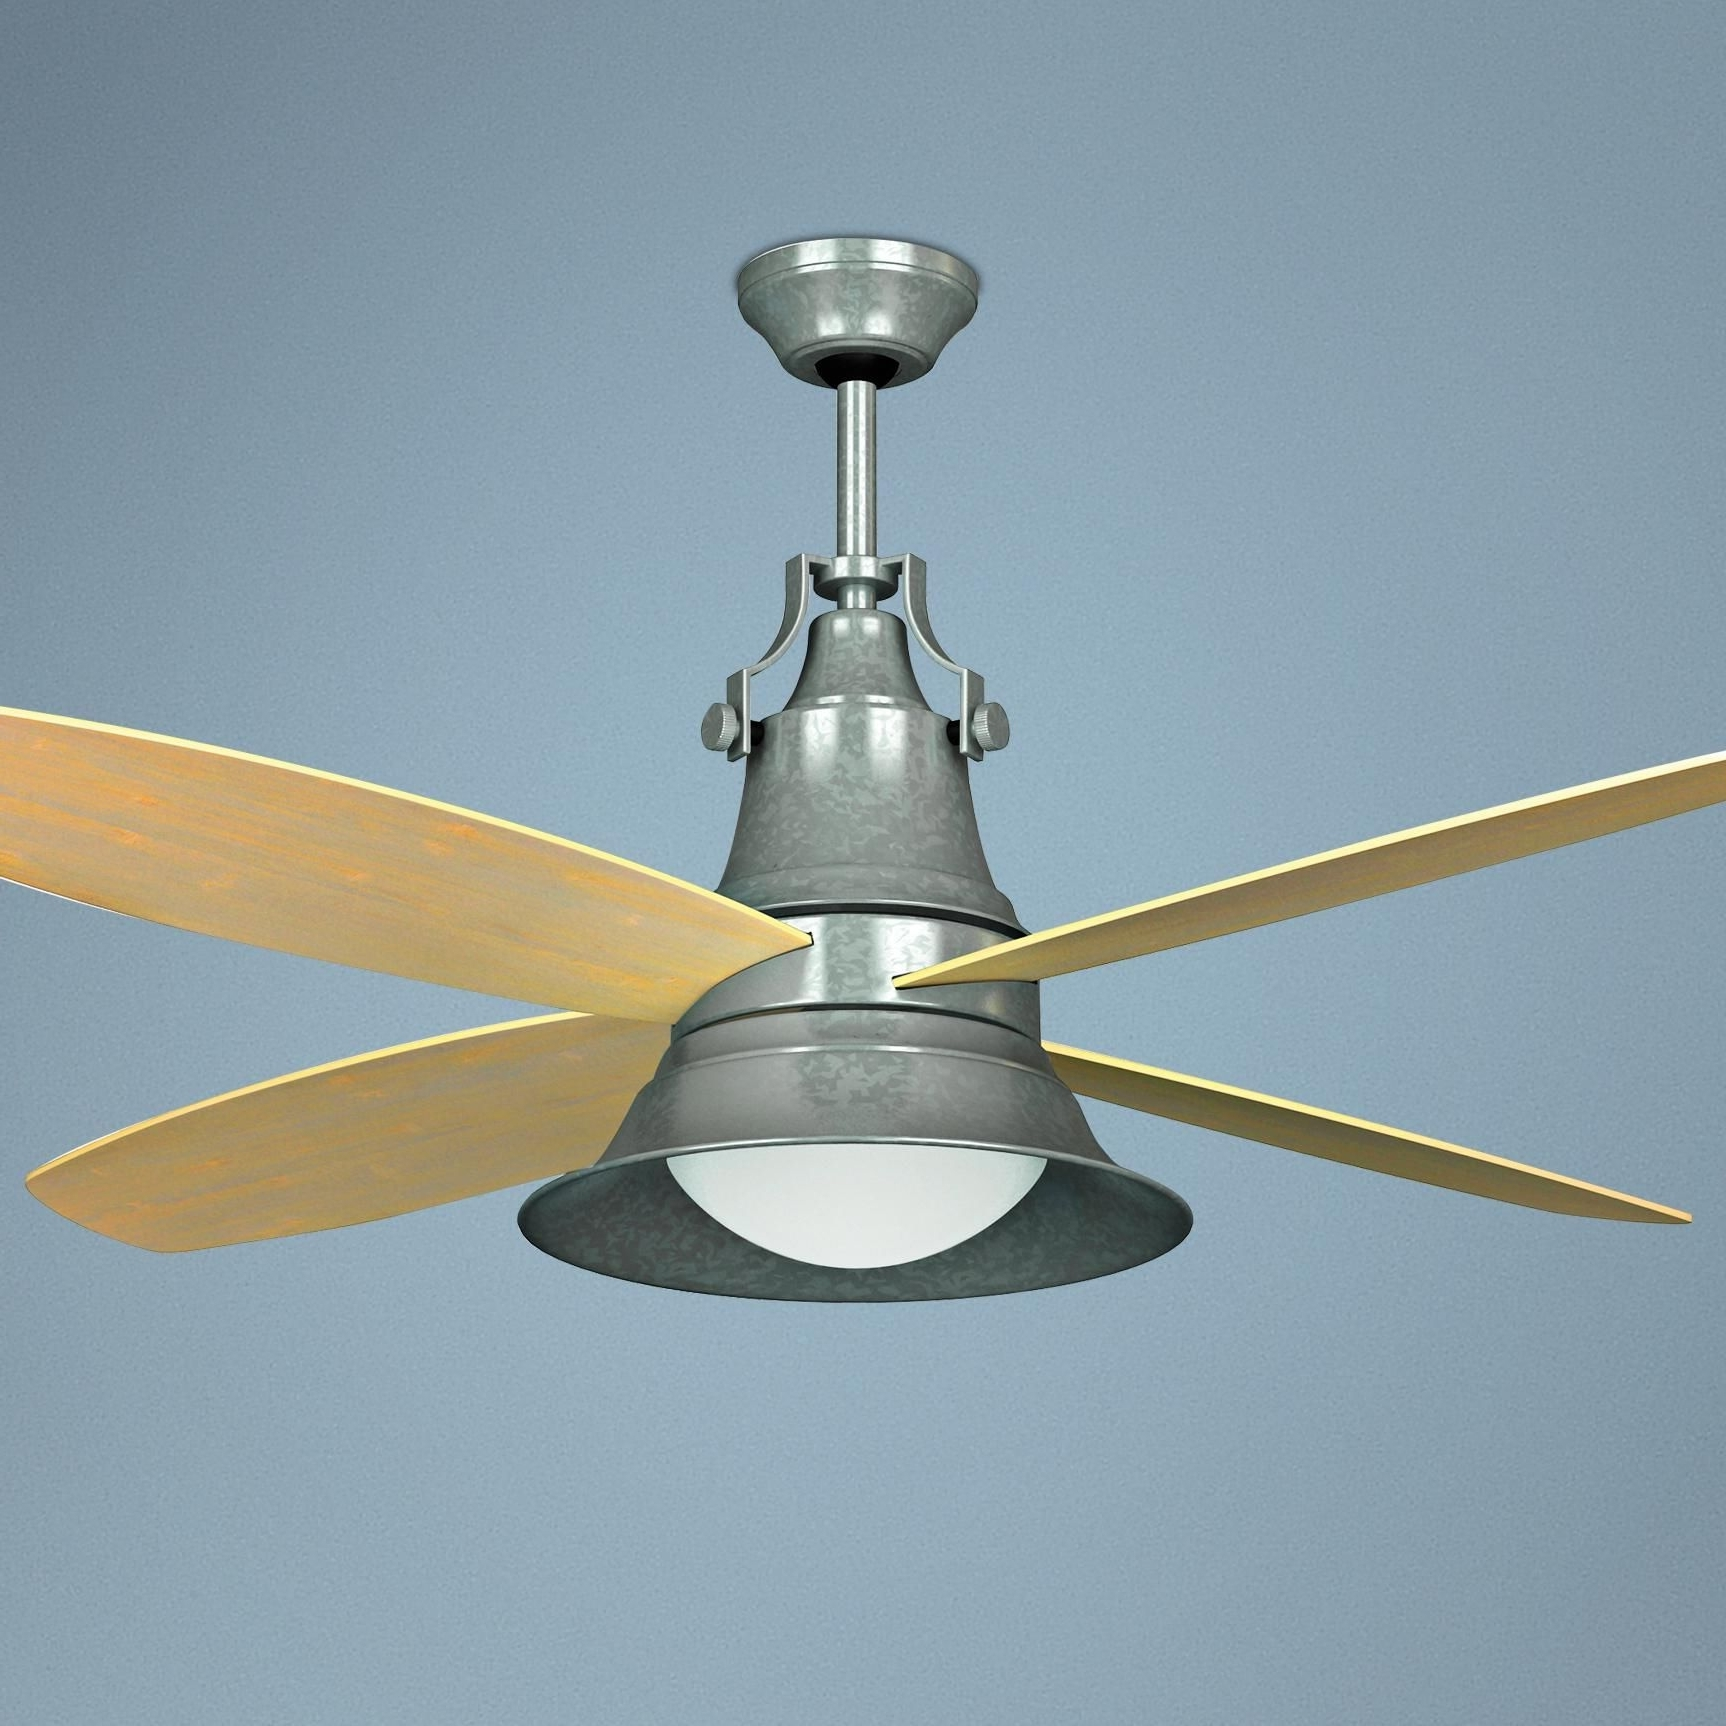 Lampsplus Intended For Most Popular Galvanized Outdoor Ceiling Fans (View 8 of 20)